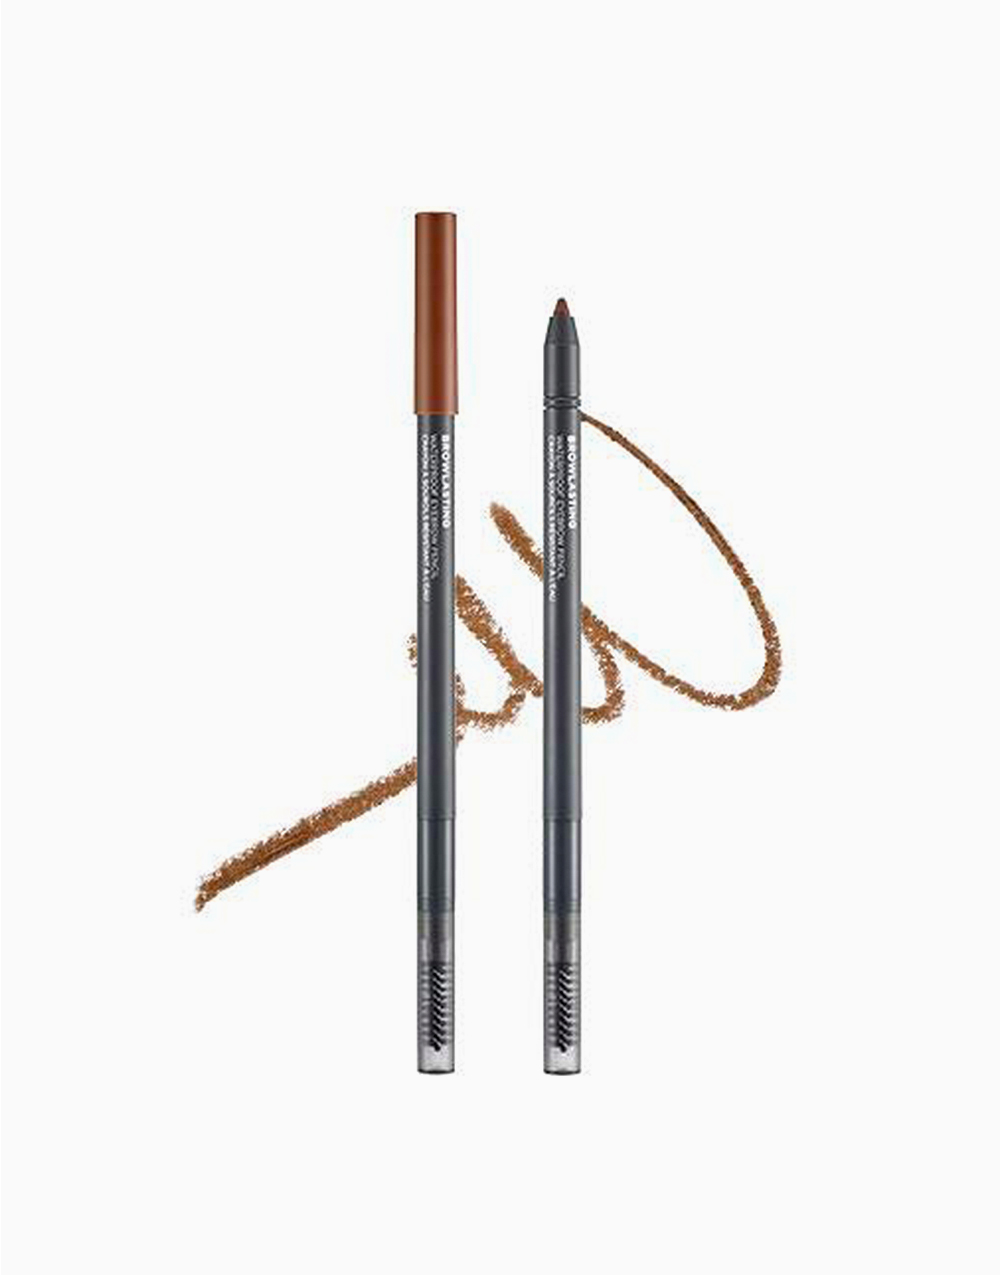 Browlasting Waterproof Eyebrow Pencil 02 Brown by The Face Shop